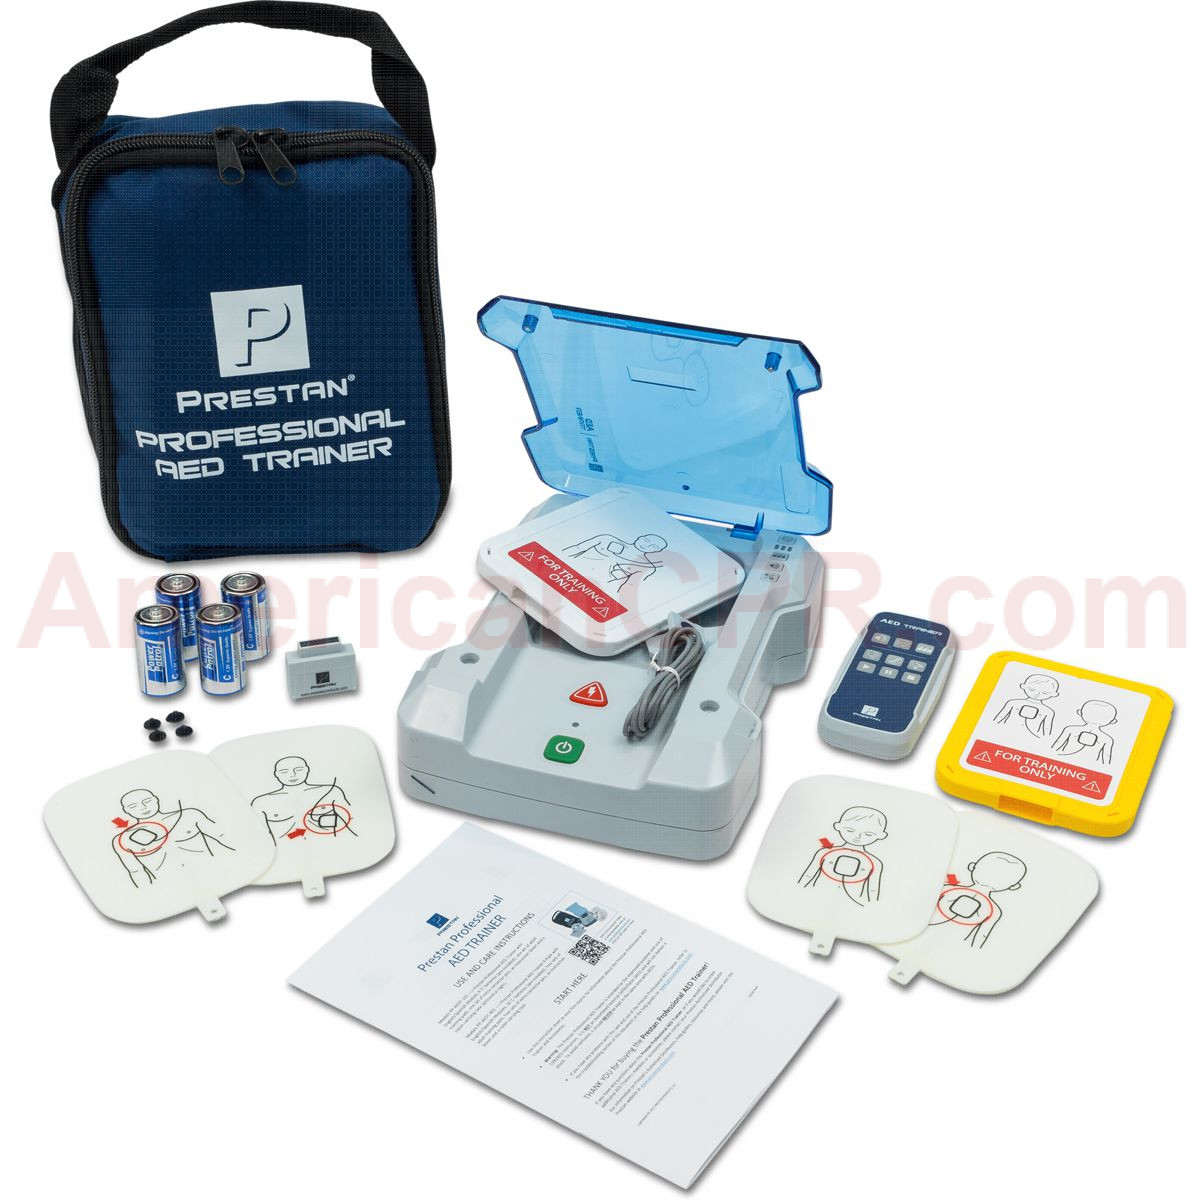 Prestan Professional AED Trainer Plus Kit - Prestan Products